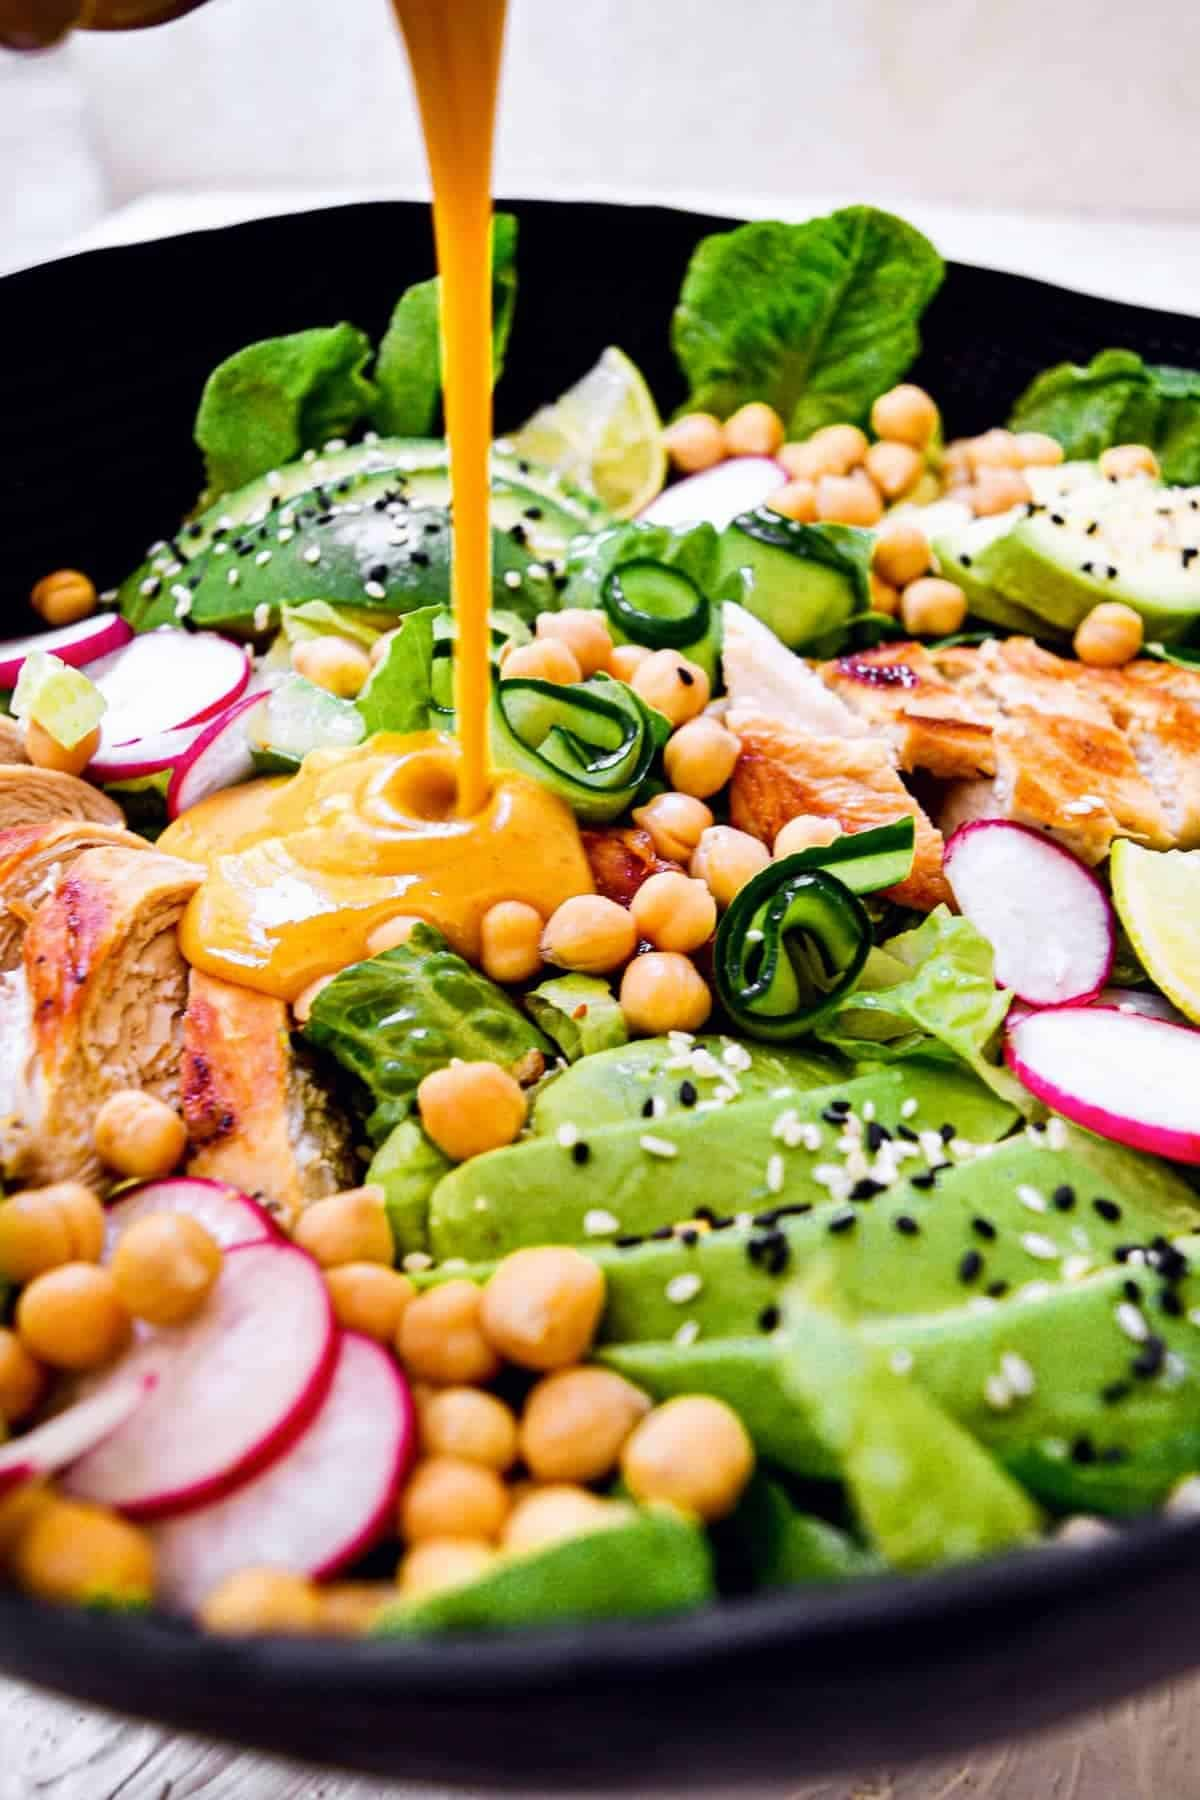 honey and mustard dressing being poured over salad